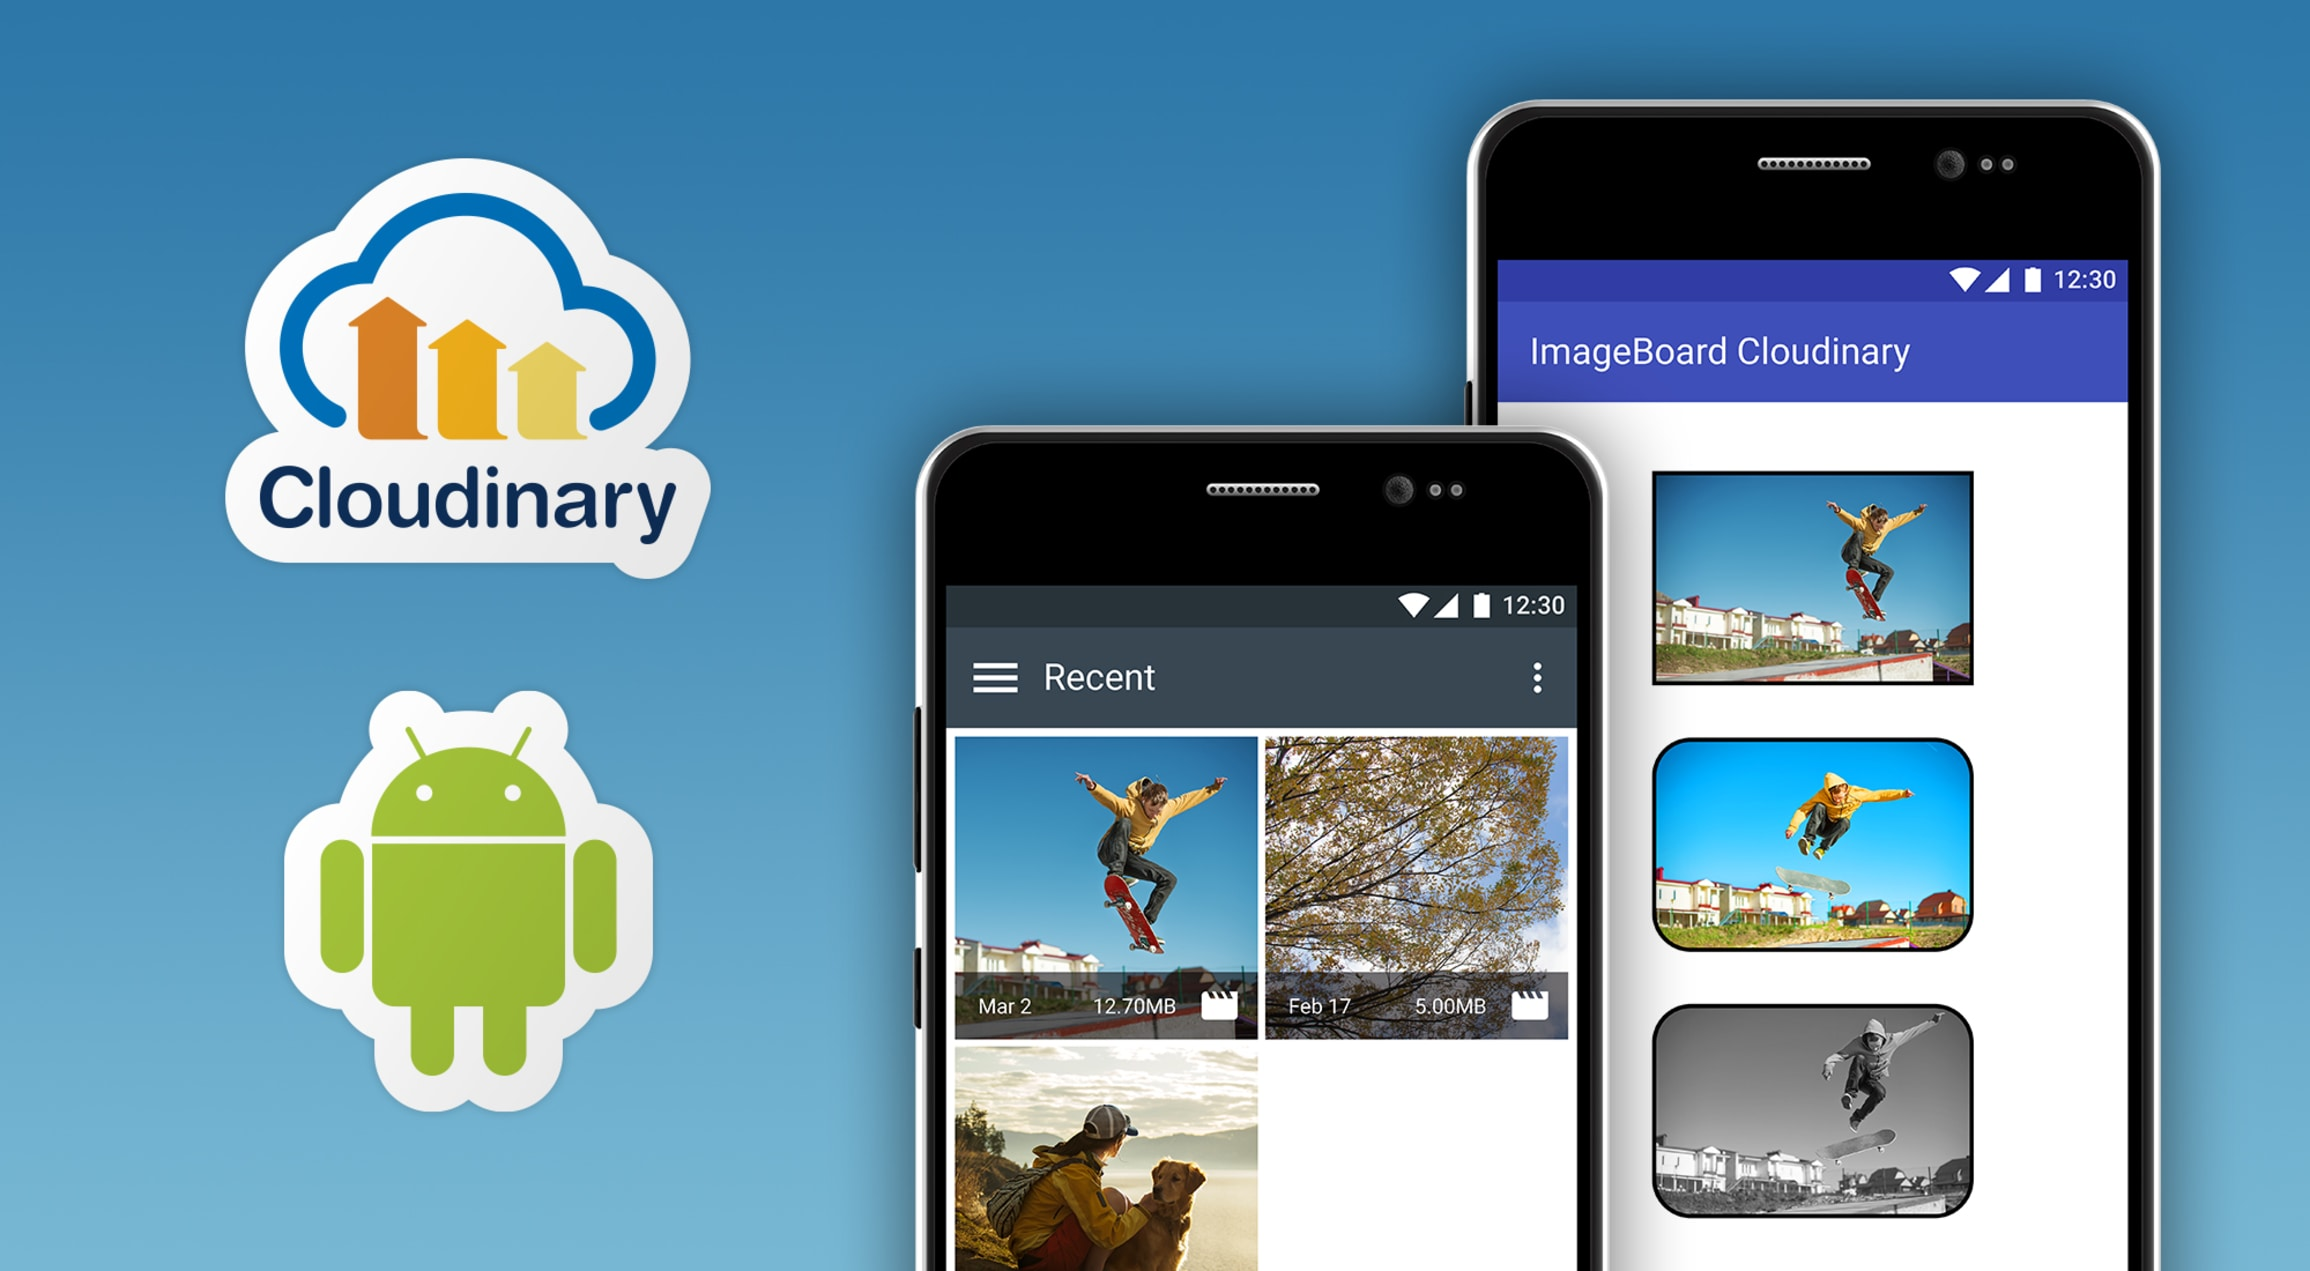 Build Your Own Image Storyboard Android App